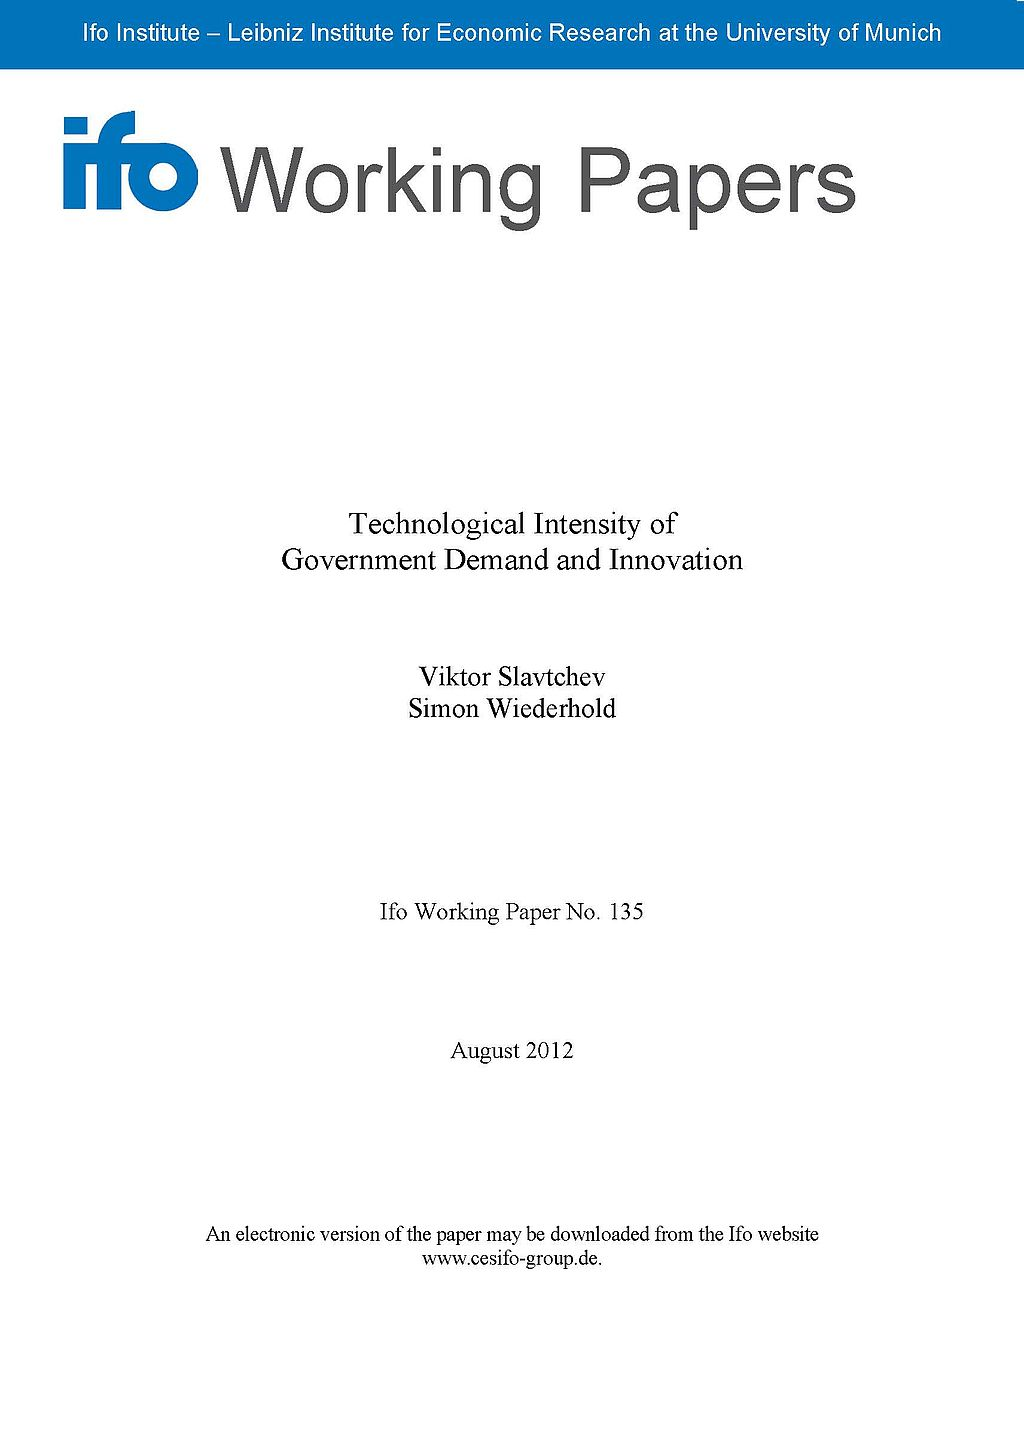 Cover_Ifo-Working-Paper_2012-august.jpg